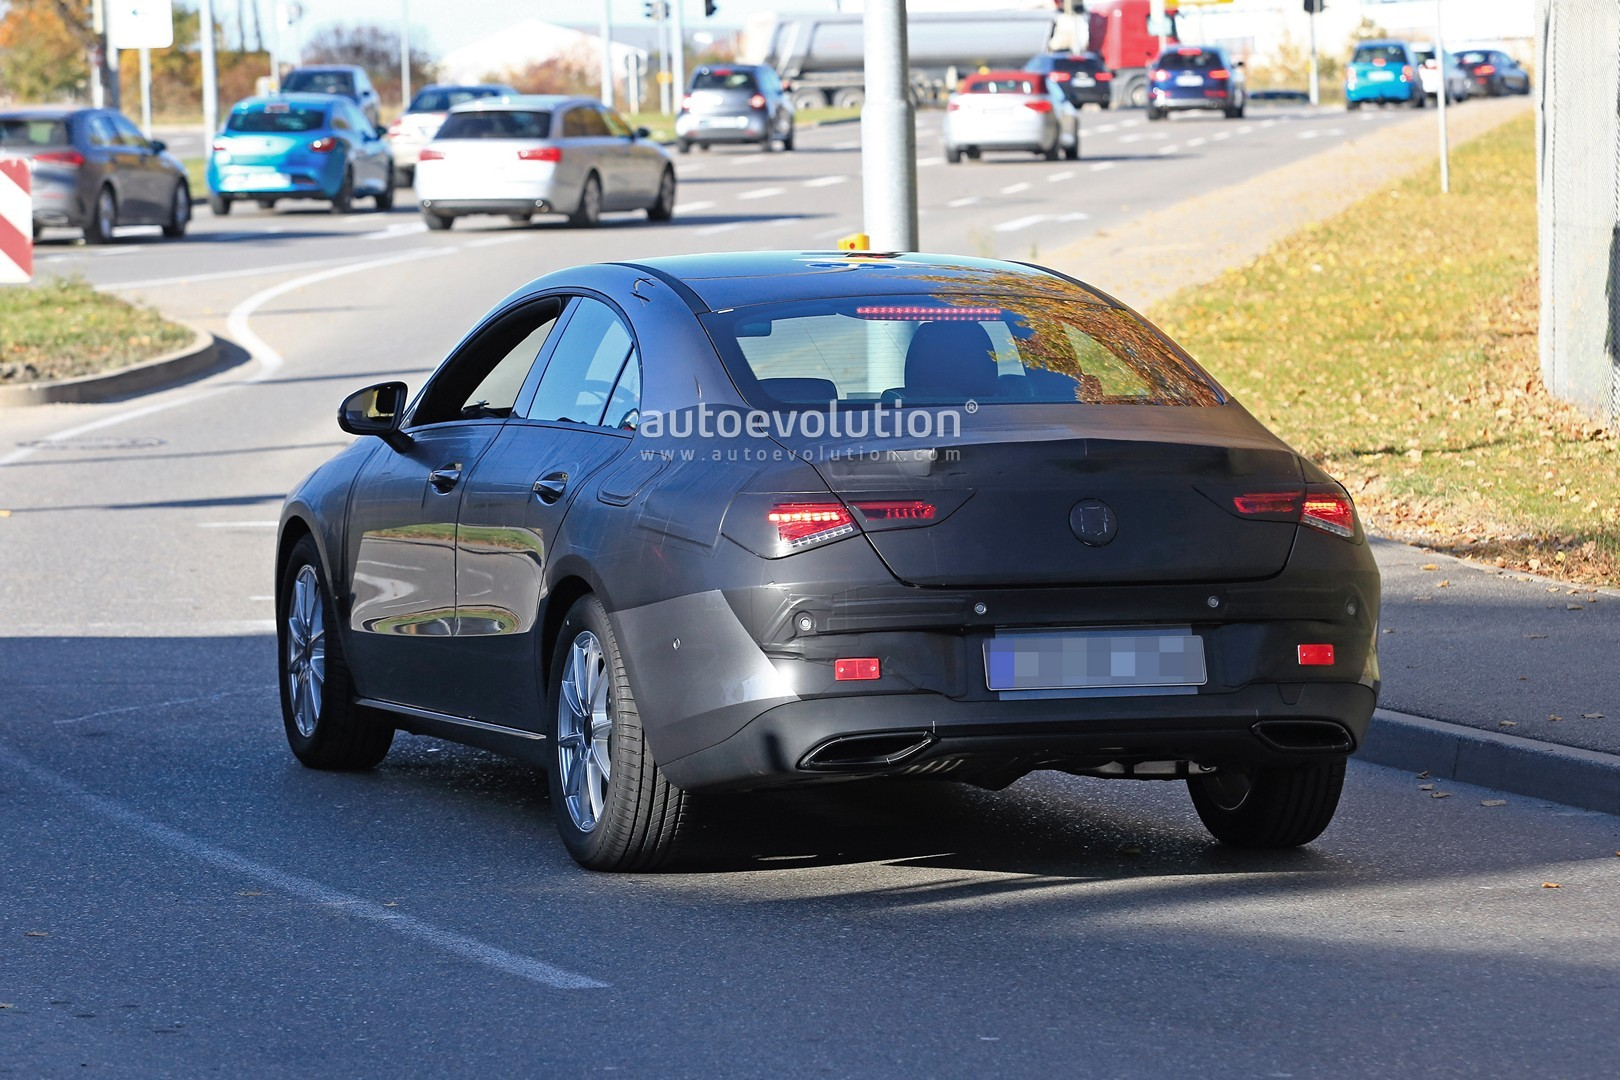 2019 - [Mercedes-Benz] CLA II - Page 4 New-mercedes-benz-cla-class-nearly-revealed-by-latest-spyshots_8